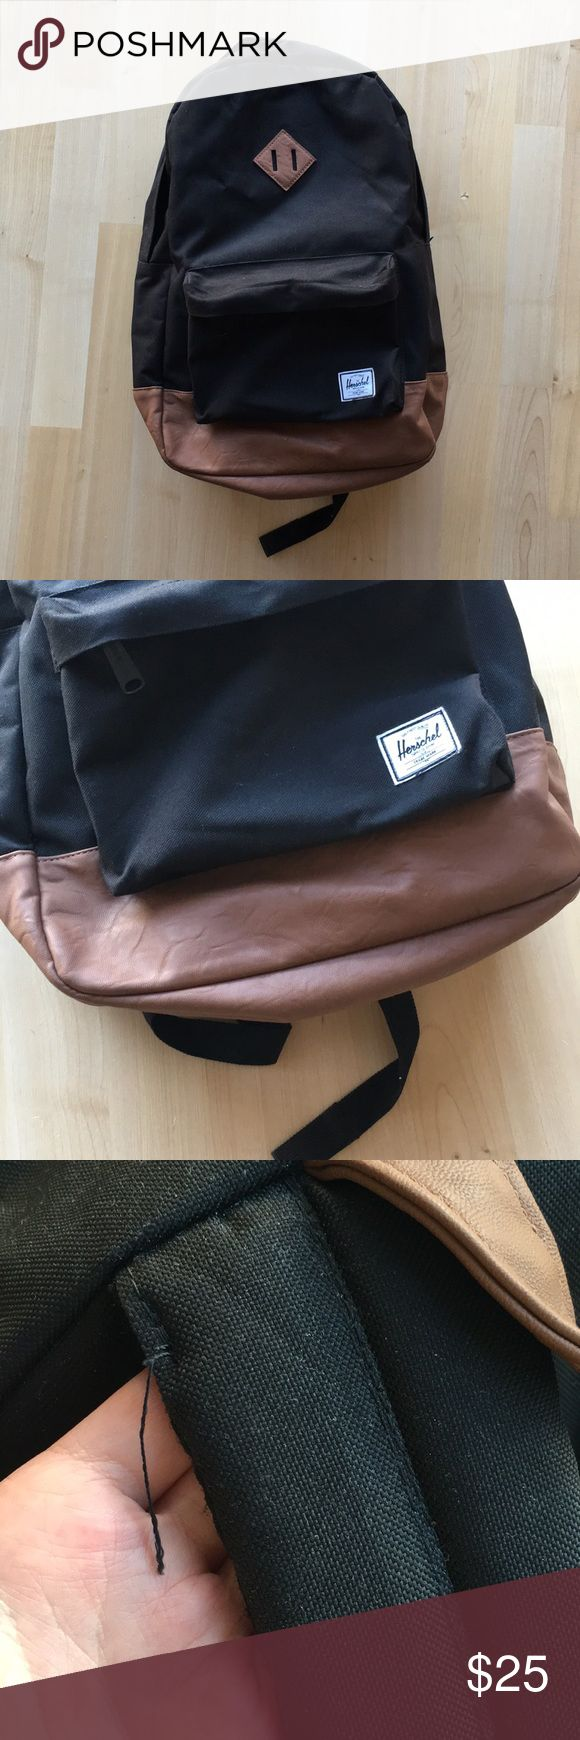 Herschel black heritage backpack Used this backpack for maybe a semester in college and has been in storage since. There is some sign of wear as seen in the pictures.   Open to offers! Herschel Supply Company Bags Backpacks